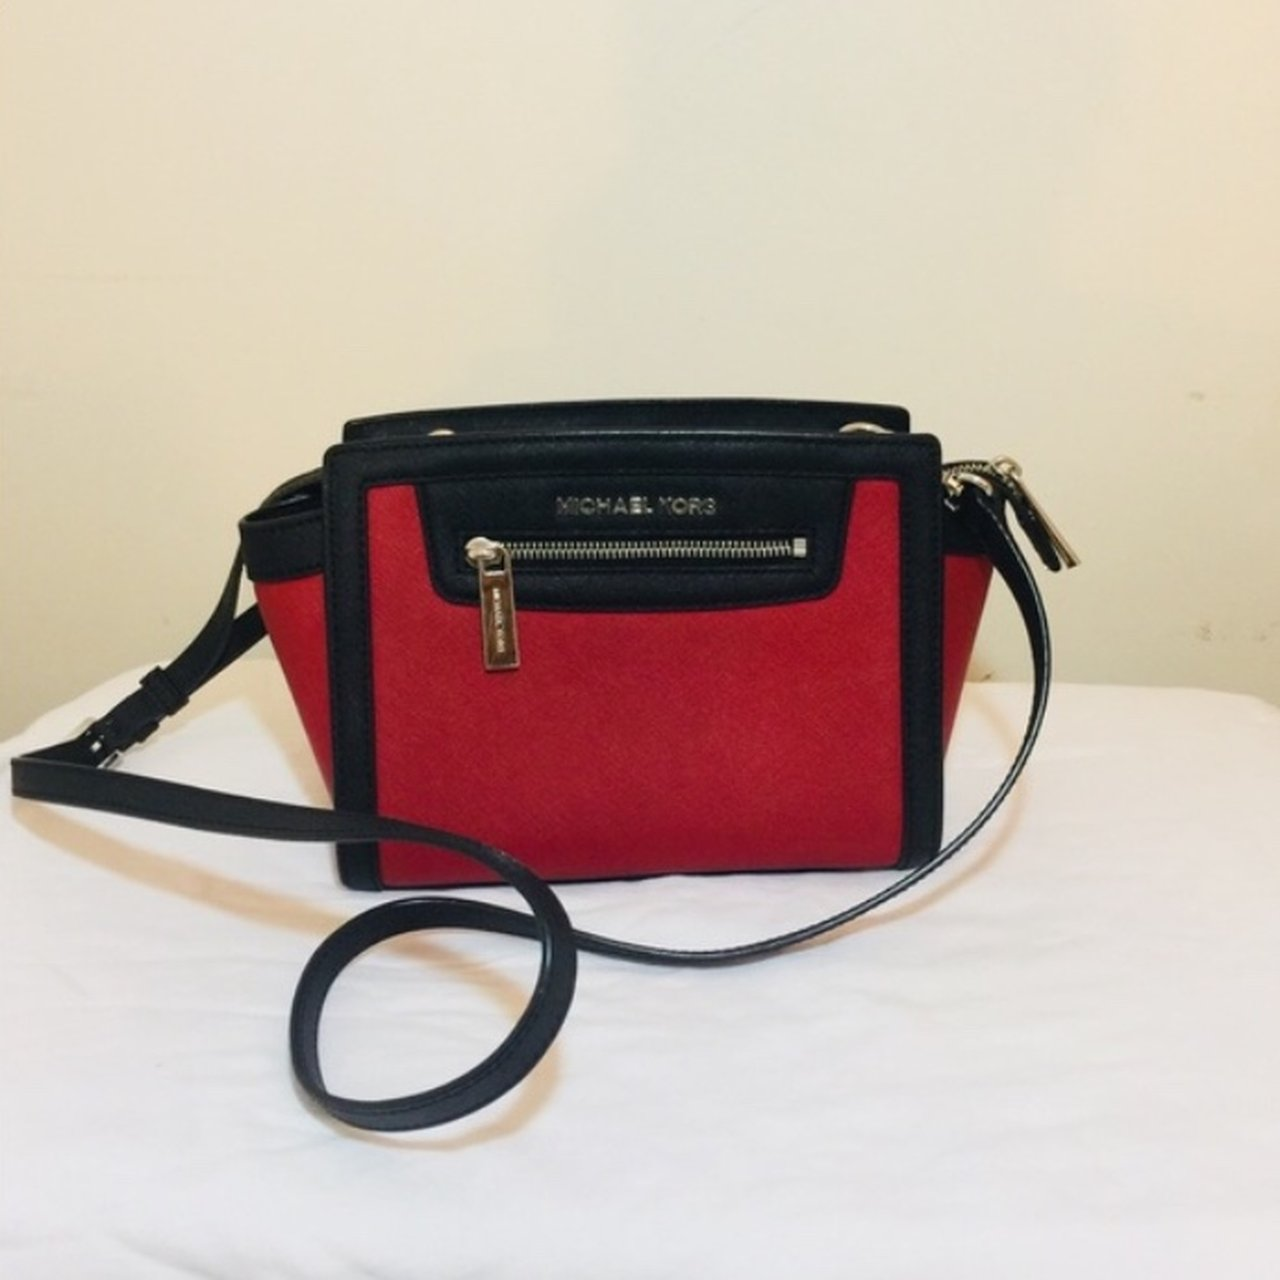 f4f3275134c8  atocloset. last month. United Kingdom. Michael Kors red and black  crossbody bag